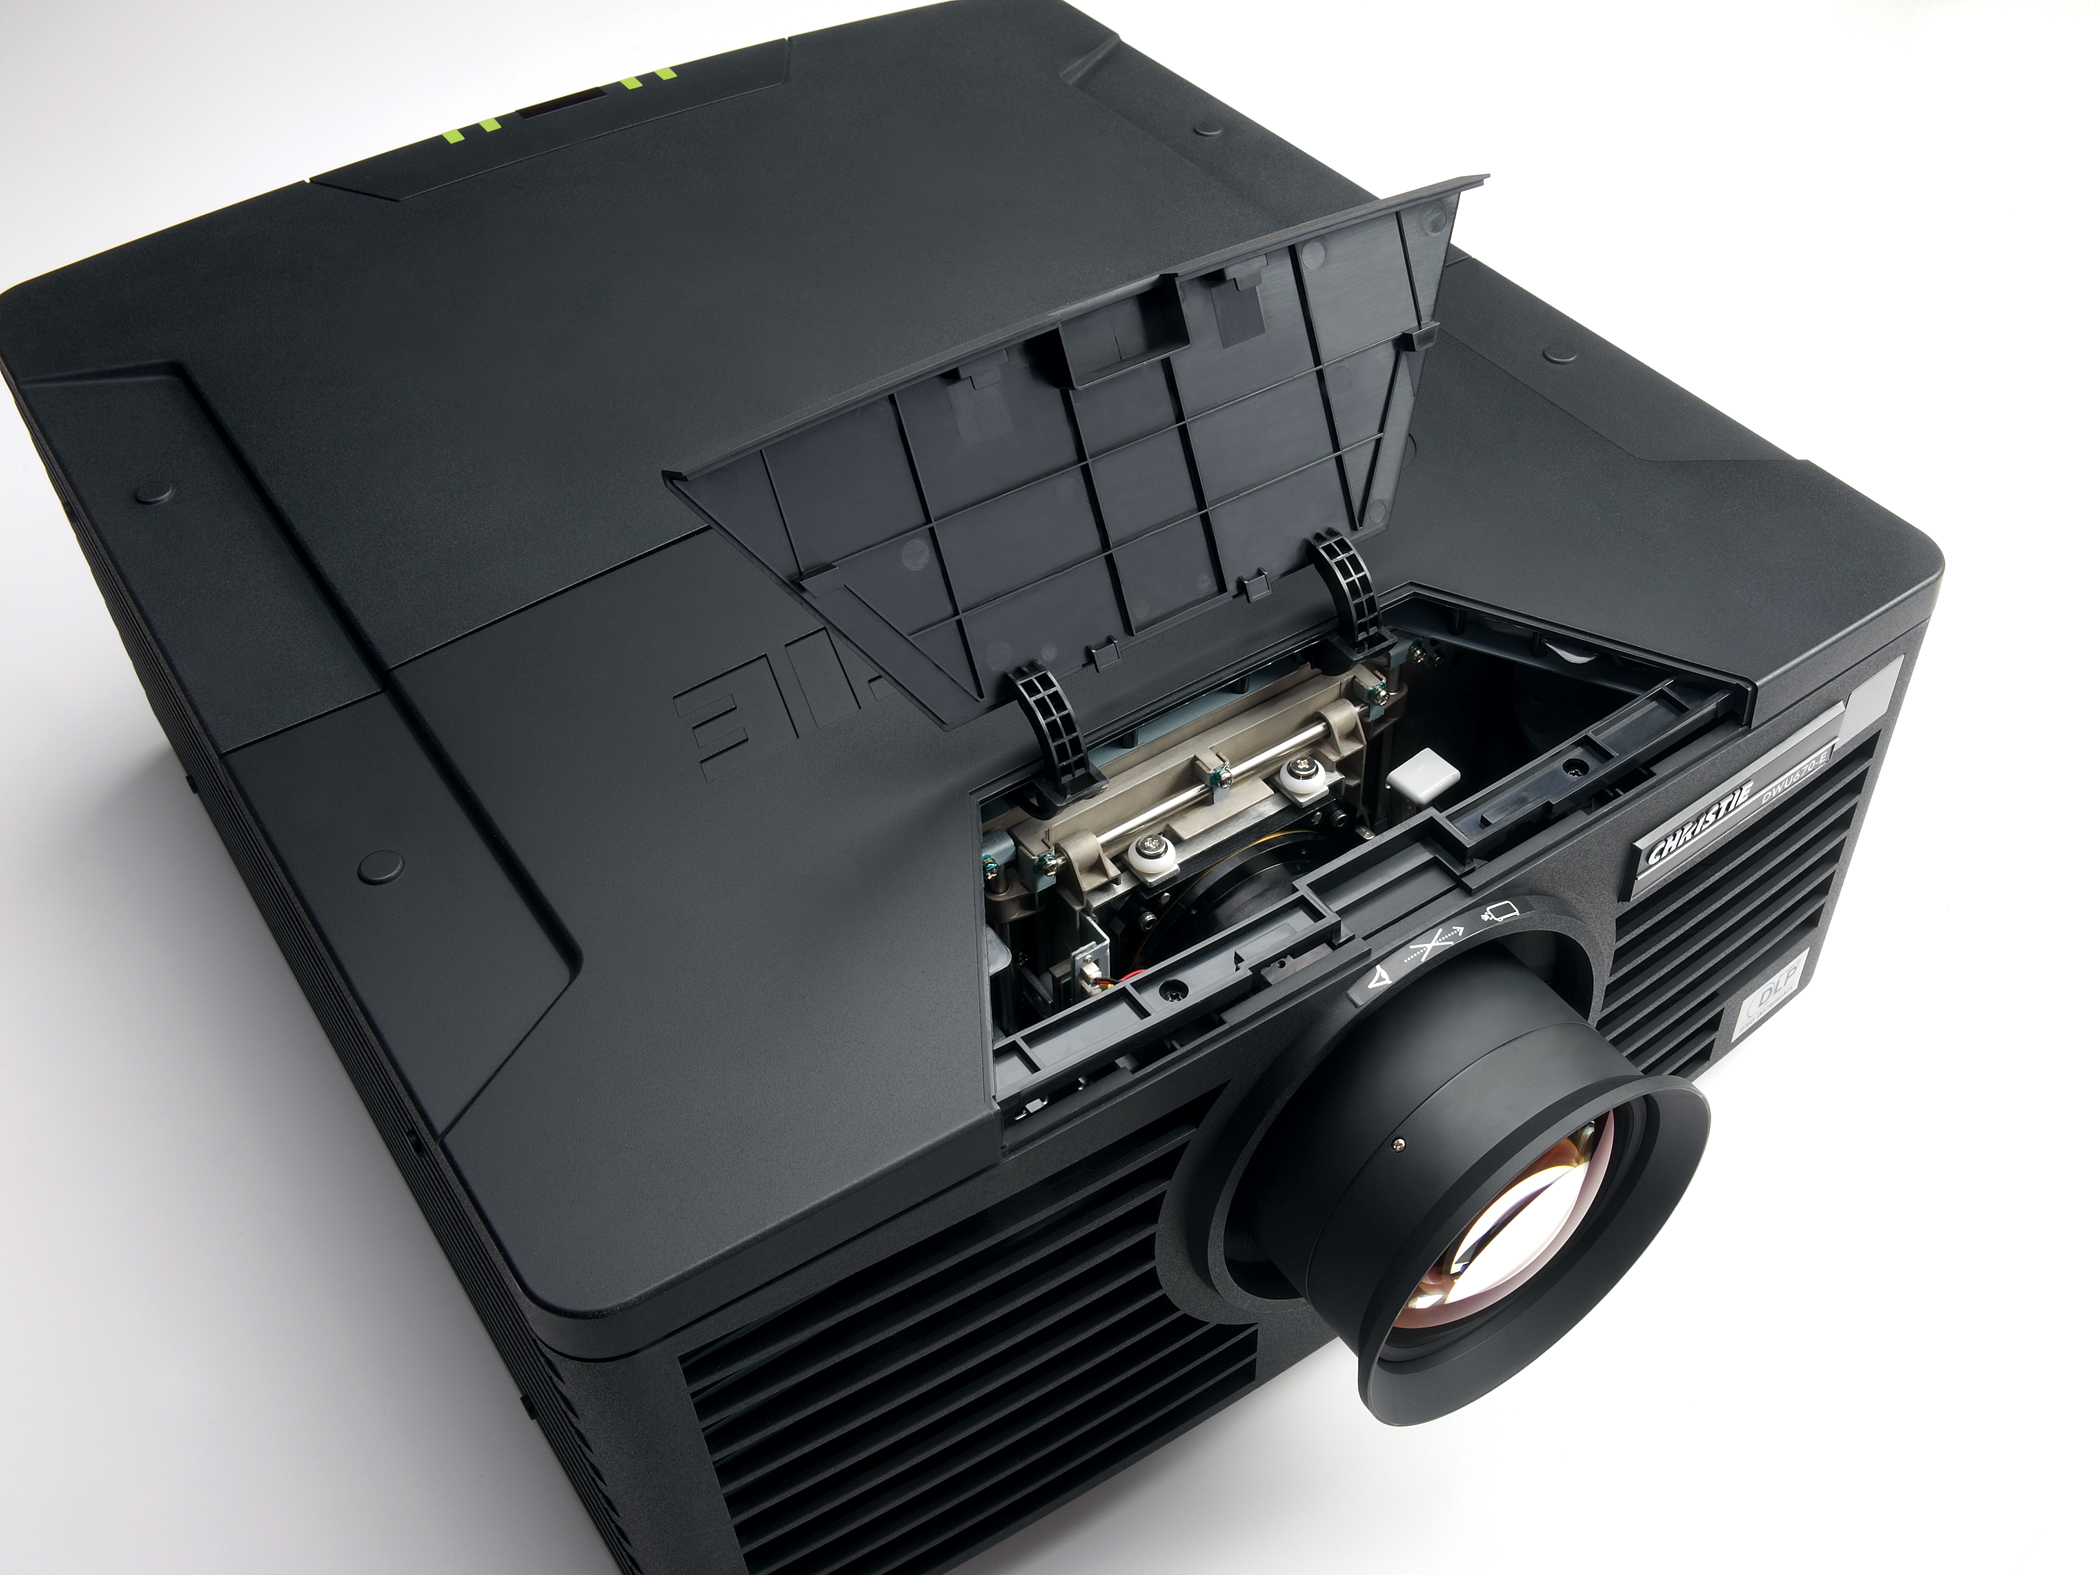 /globalassets/.catalog/products/images/christie-dwu670-e/gallery/christie-dwu670-e-dlp-digital-projector-lens-cover.jpg